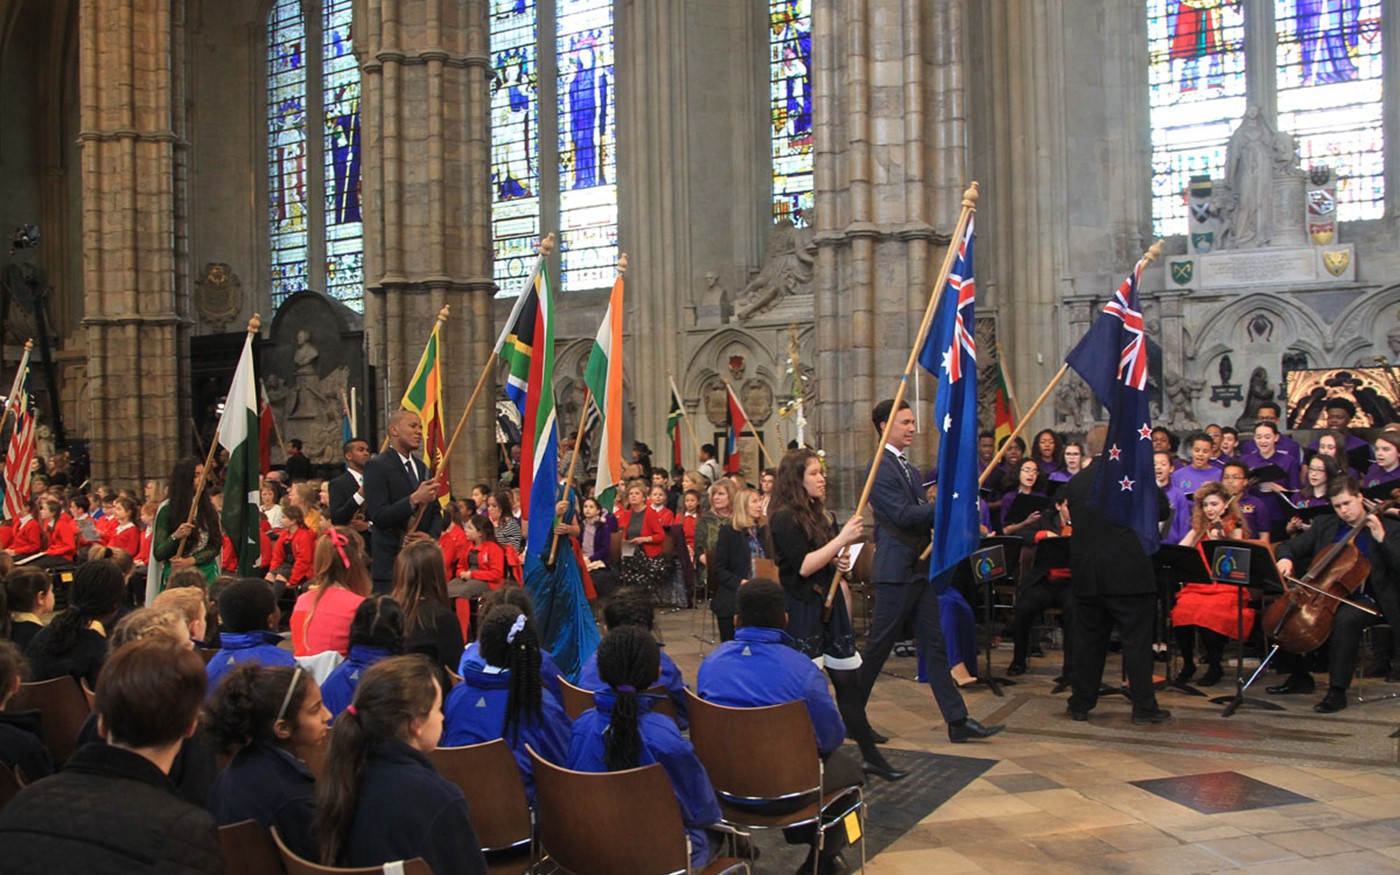 The Flags of the 52 Commonwealth nations are processed through the Abbey